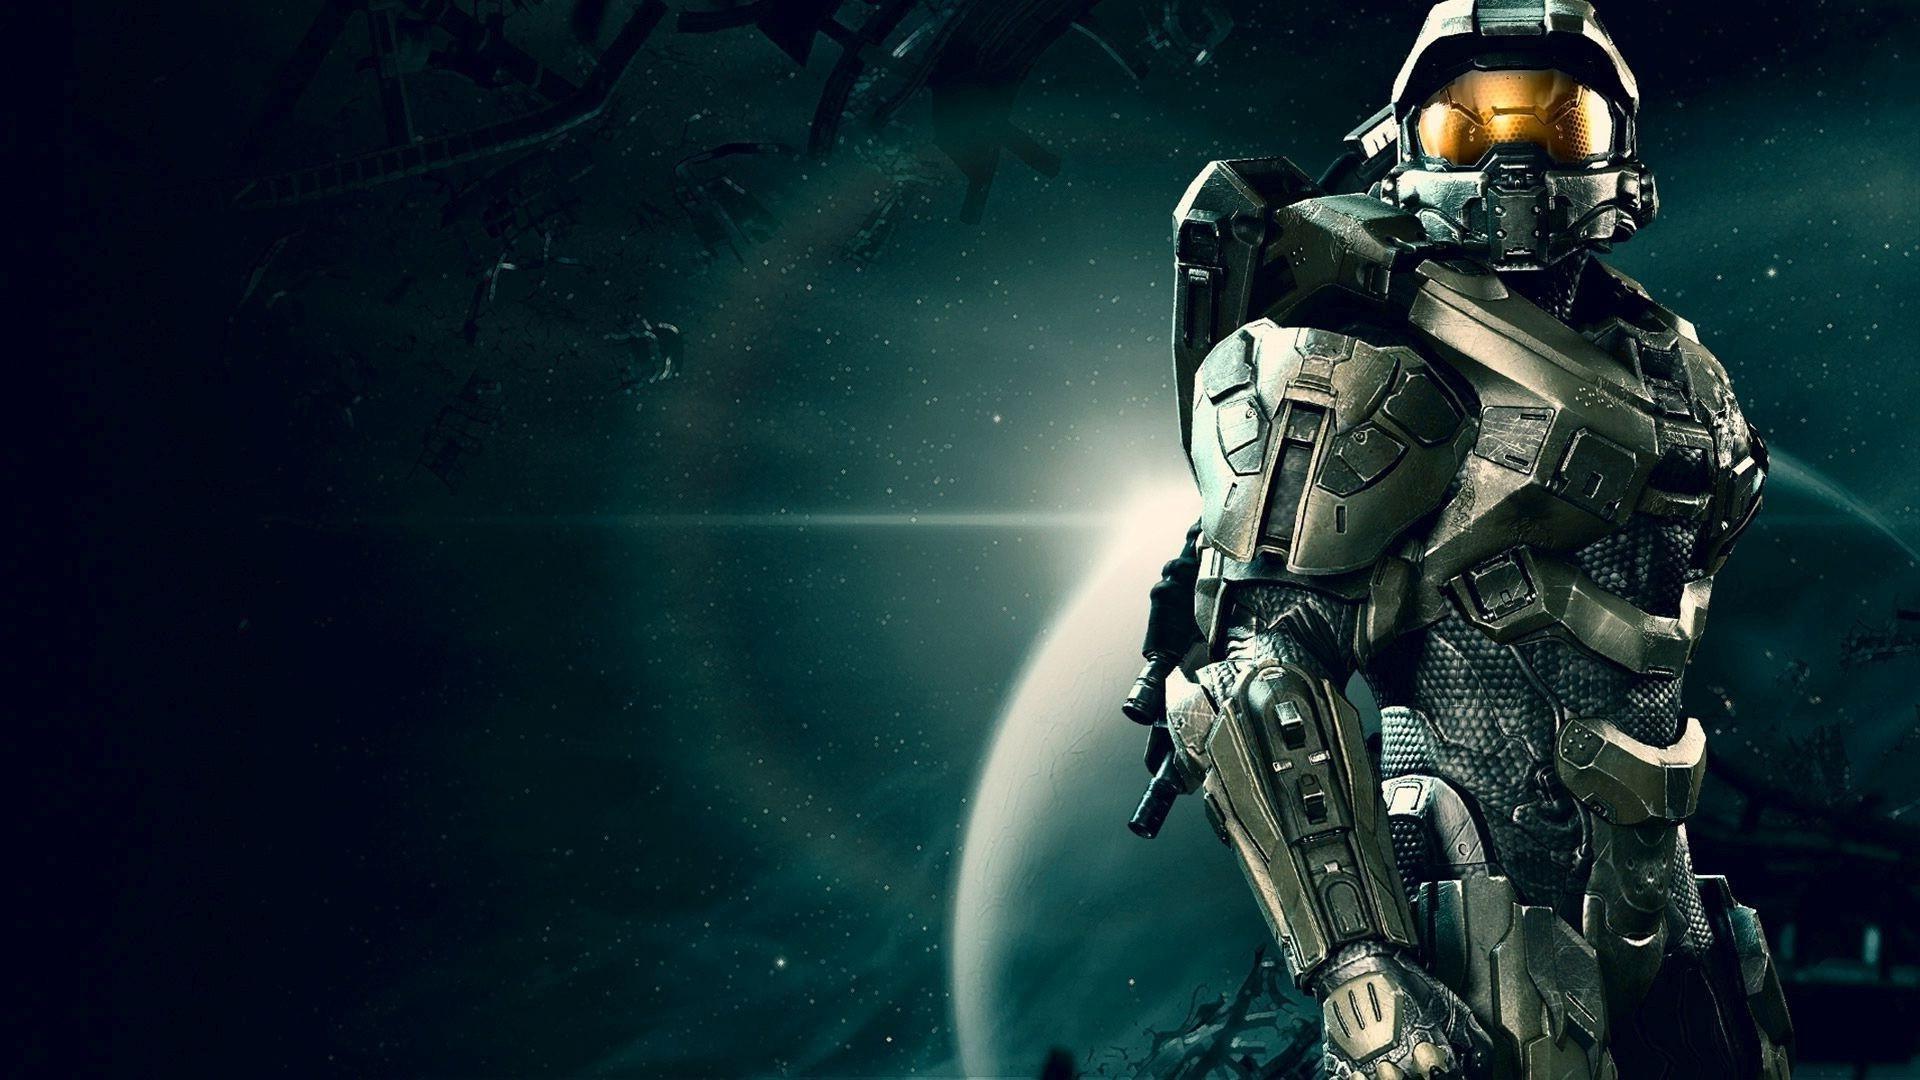 video Games, Halo, Halo 4, Master Chief, UNSC Infinity, 343 Industries,  Spartans, Xbox One Wallpapers HD / Desktop and Mobile Backgrounds